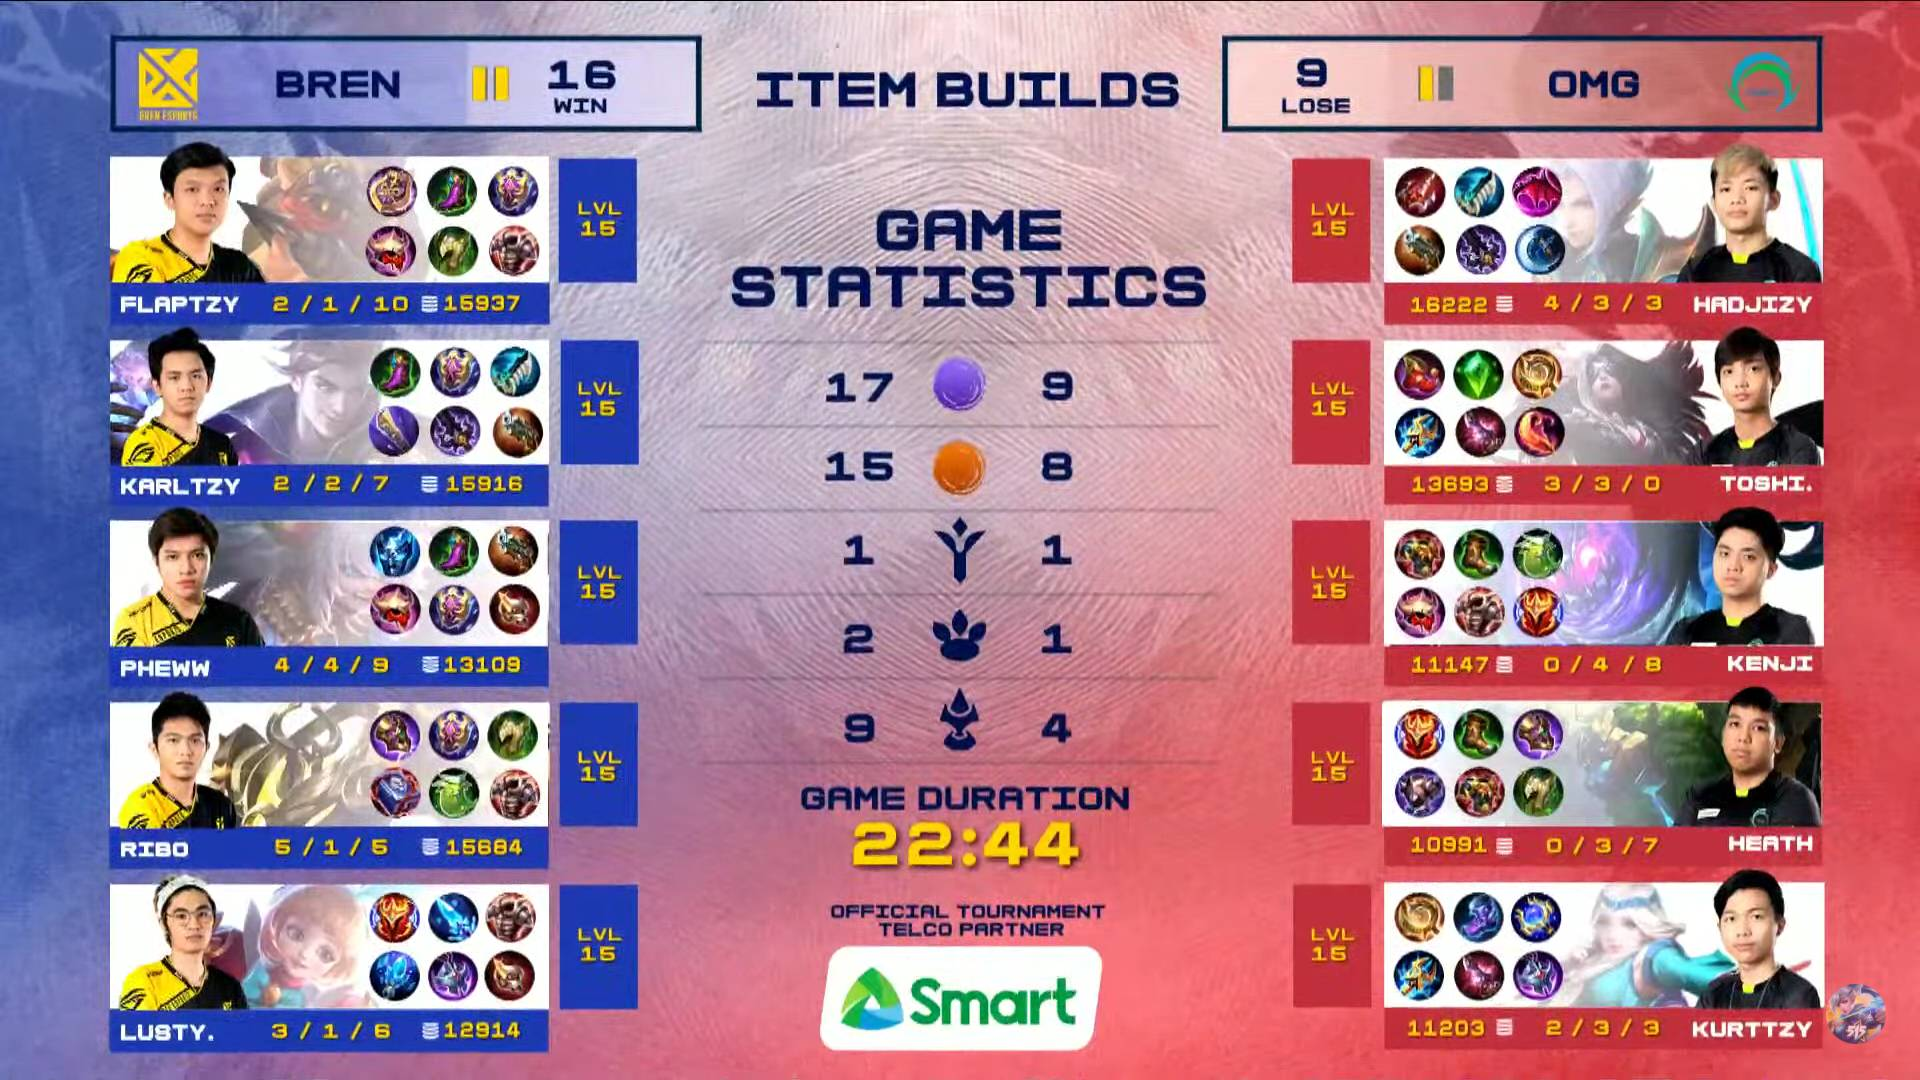 MPL-PH-Season-7-Bren-def-Omega-Game-3 Bren commits to KarlTzy's Claude, outlasts SMART Omega in MPL PH Finals rematch ESports Mobile Legends MPL-PH News  - philippine sports news